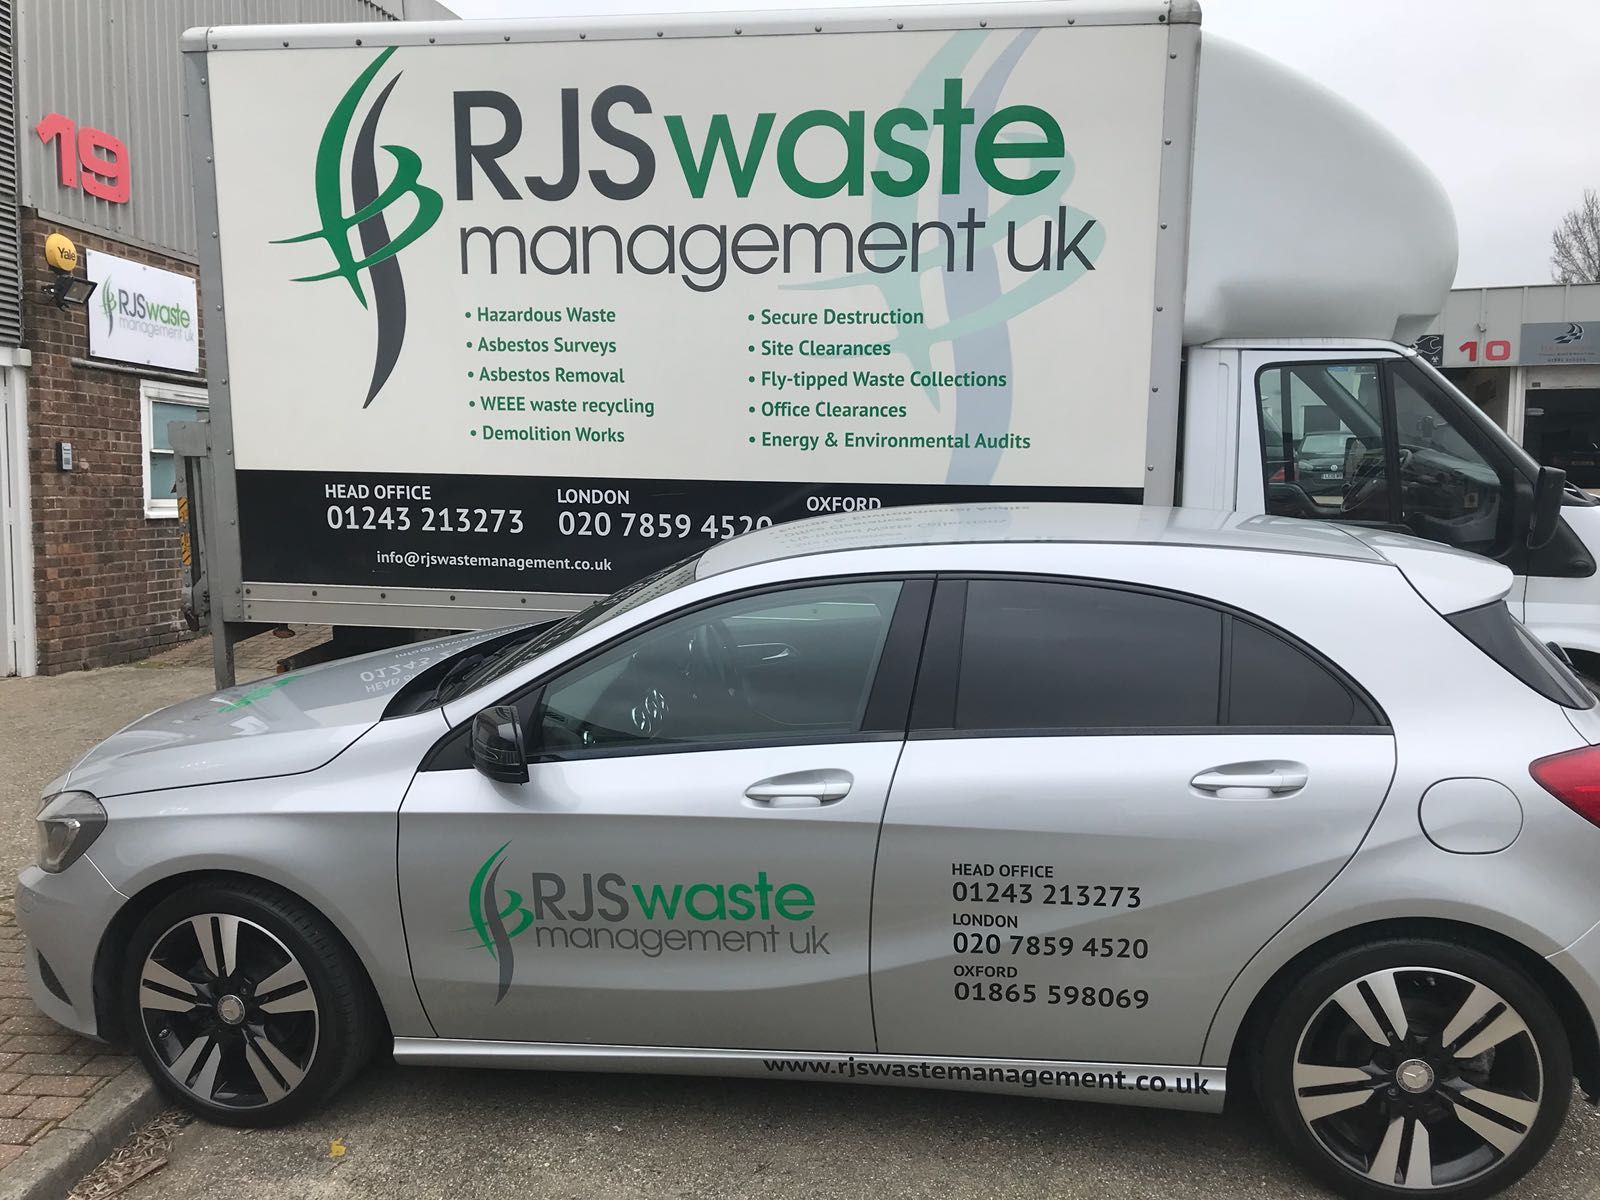 RJS Waste London car and waste removal van